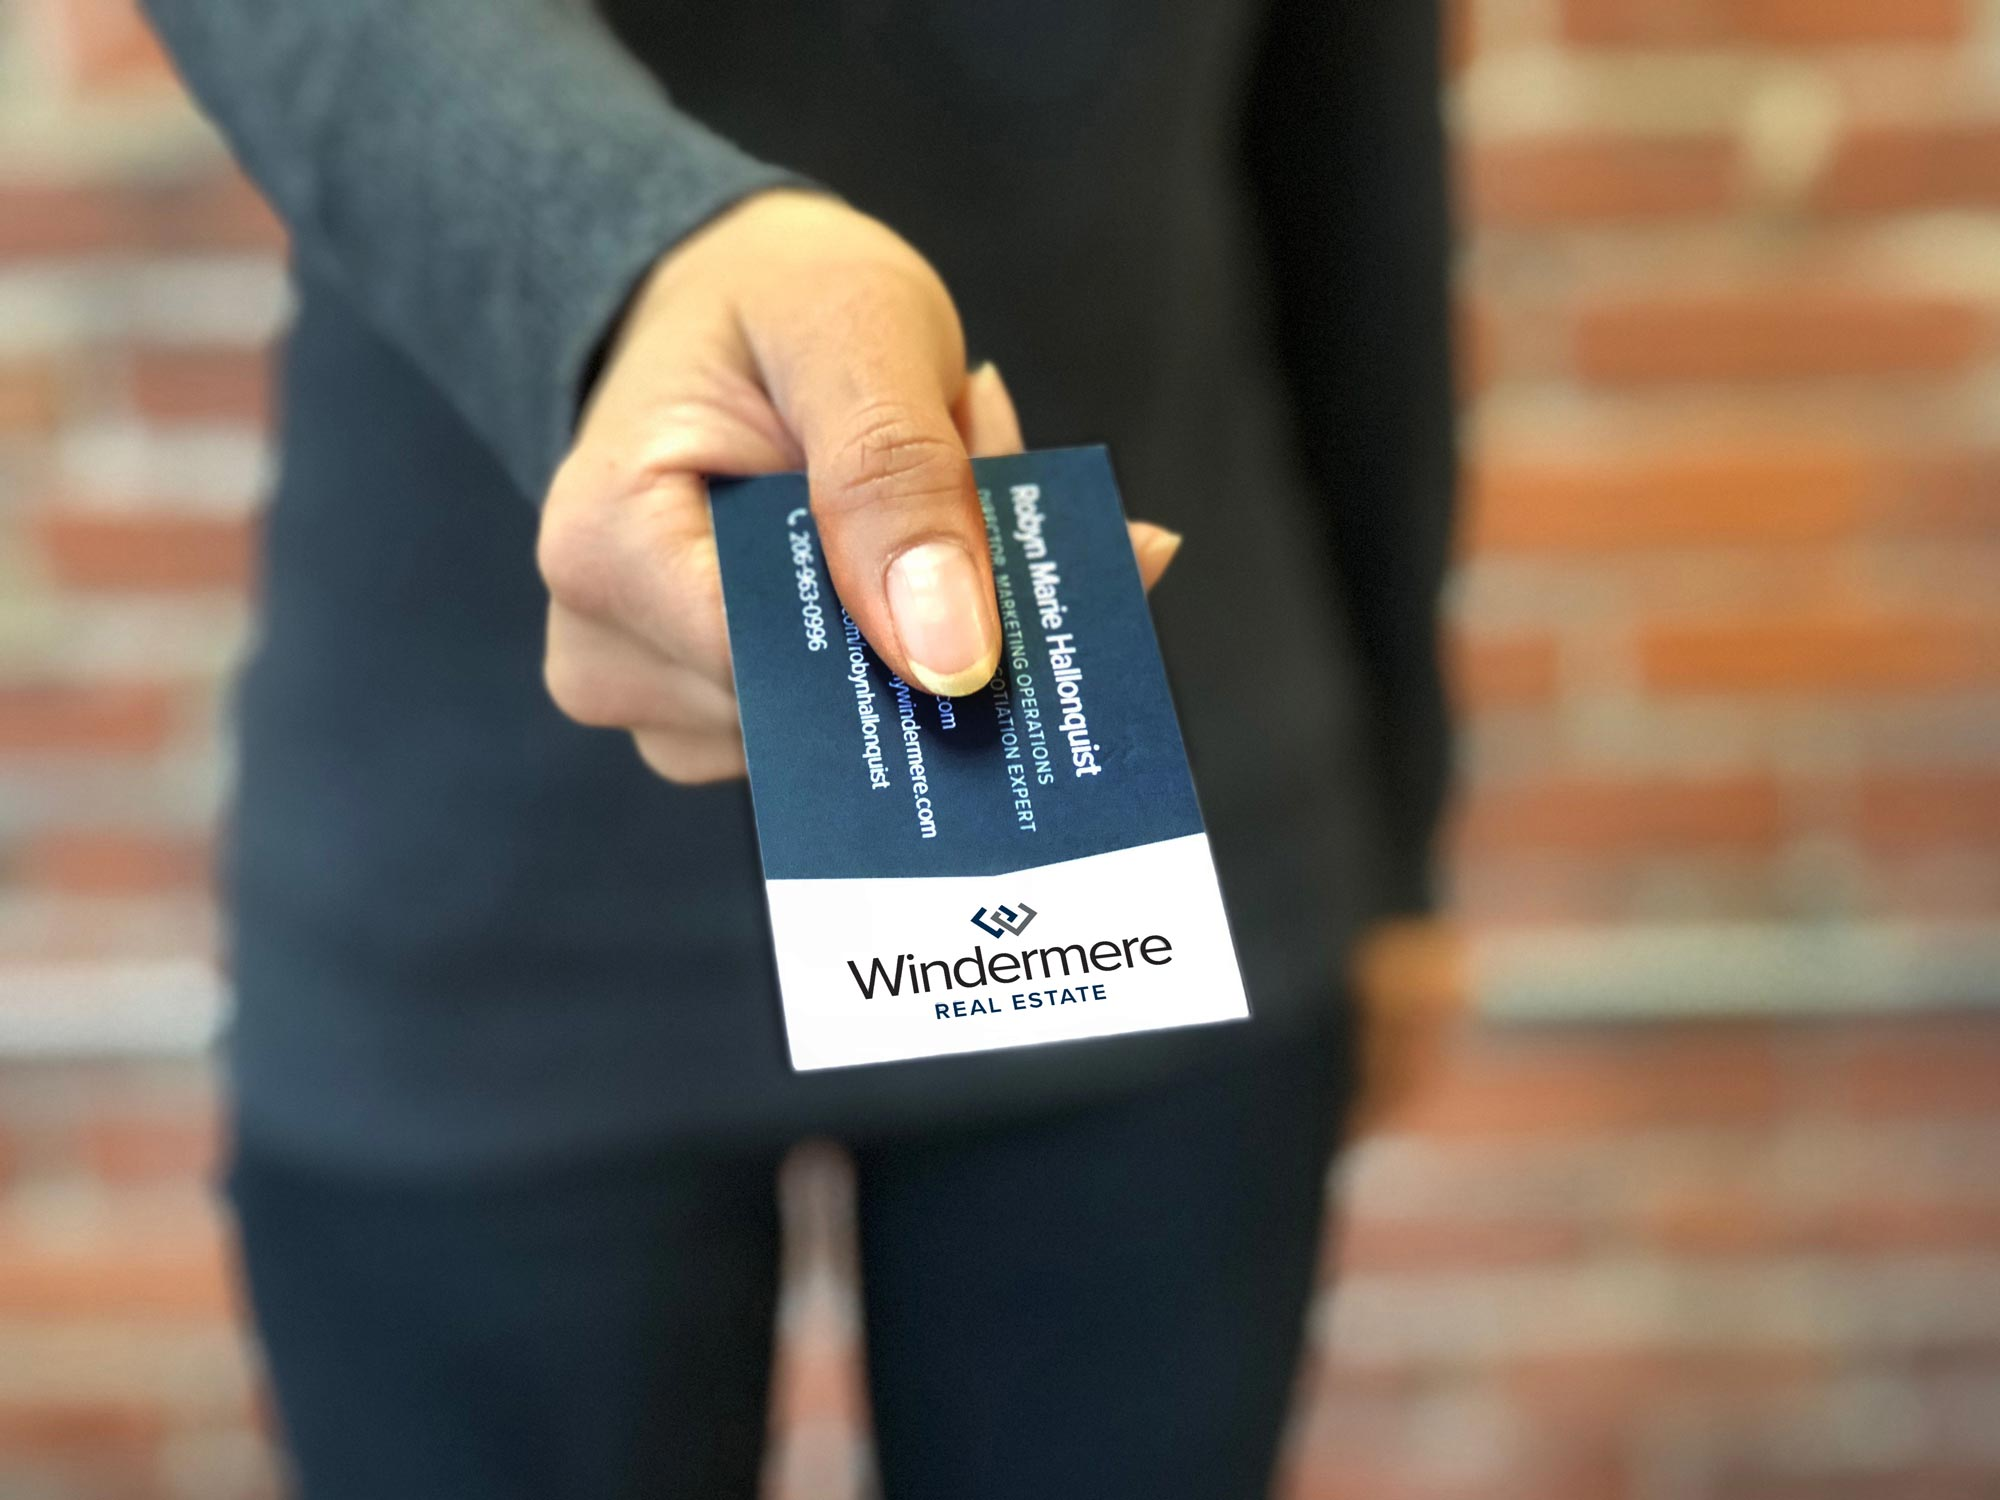 refresh-Windermere-business-card-handing